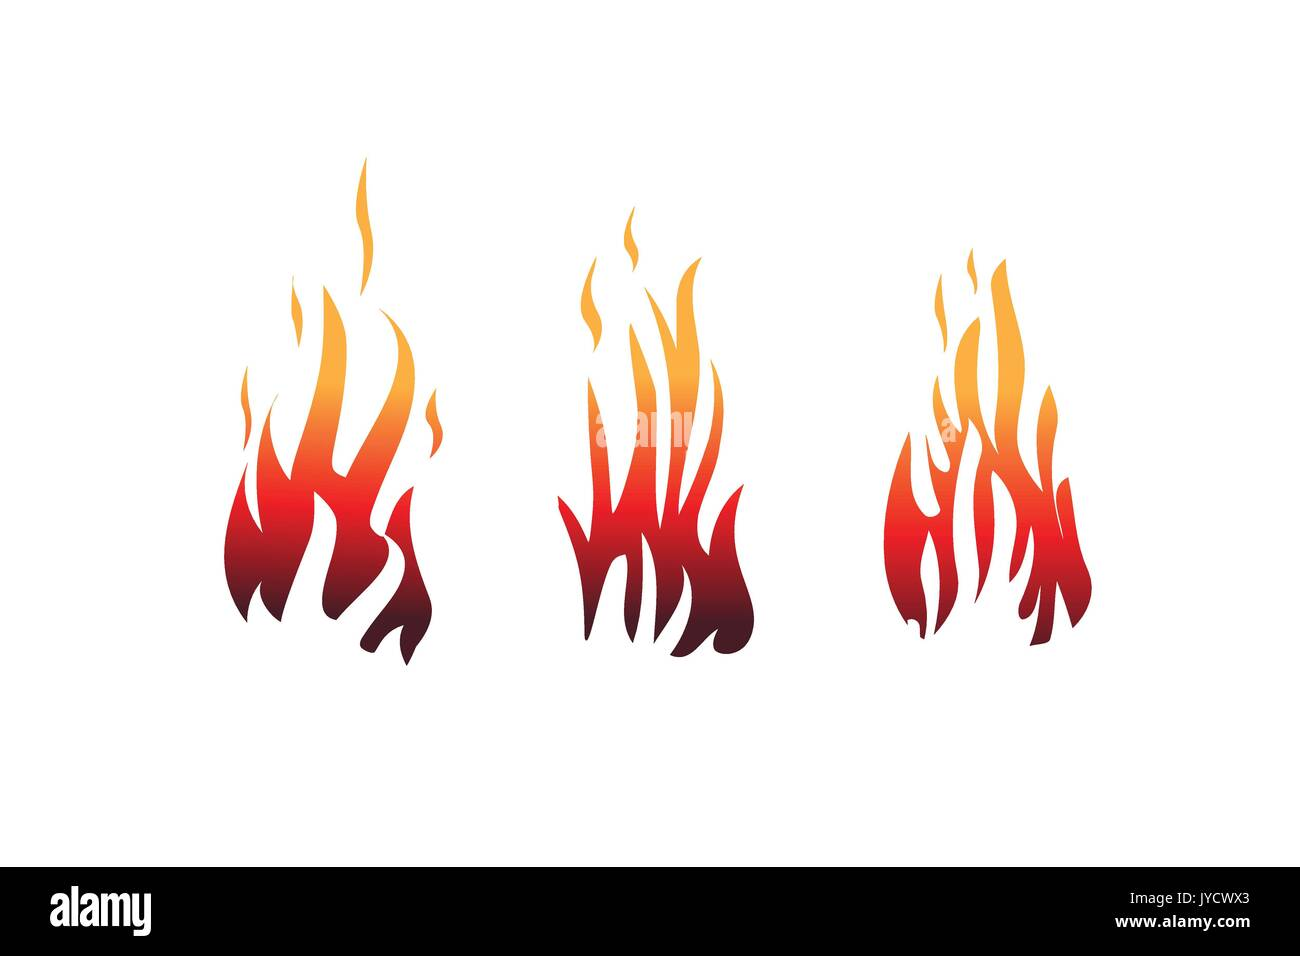 set of flames, flame illustration, icon design, isolated on white background. - Stock Vector